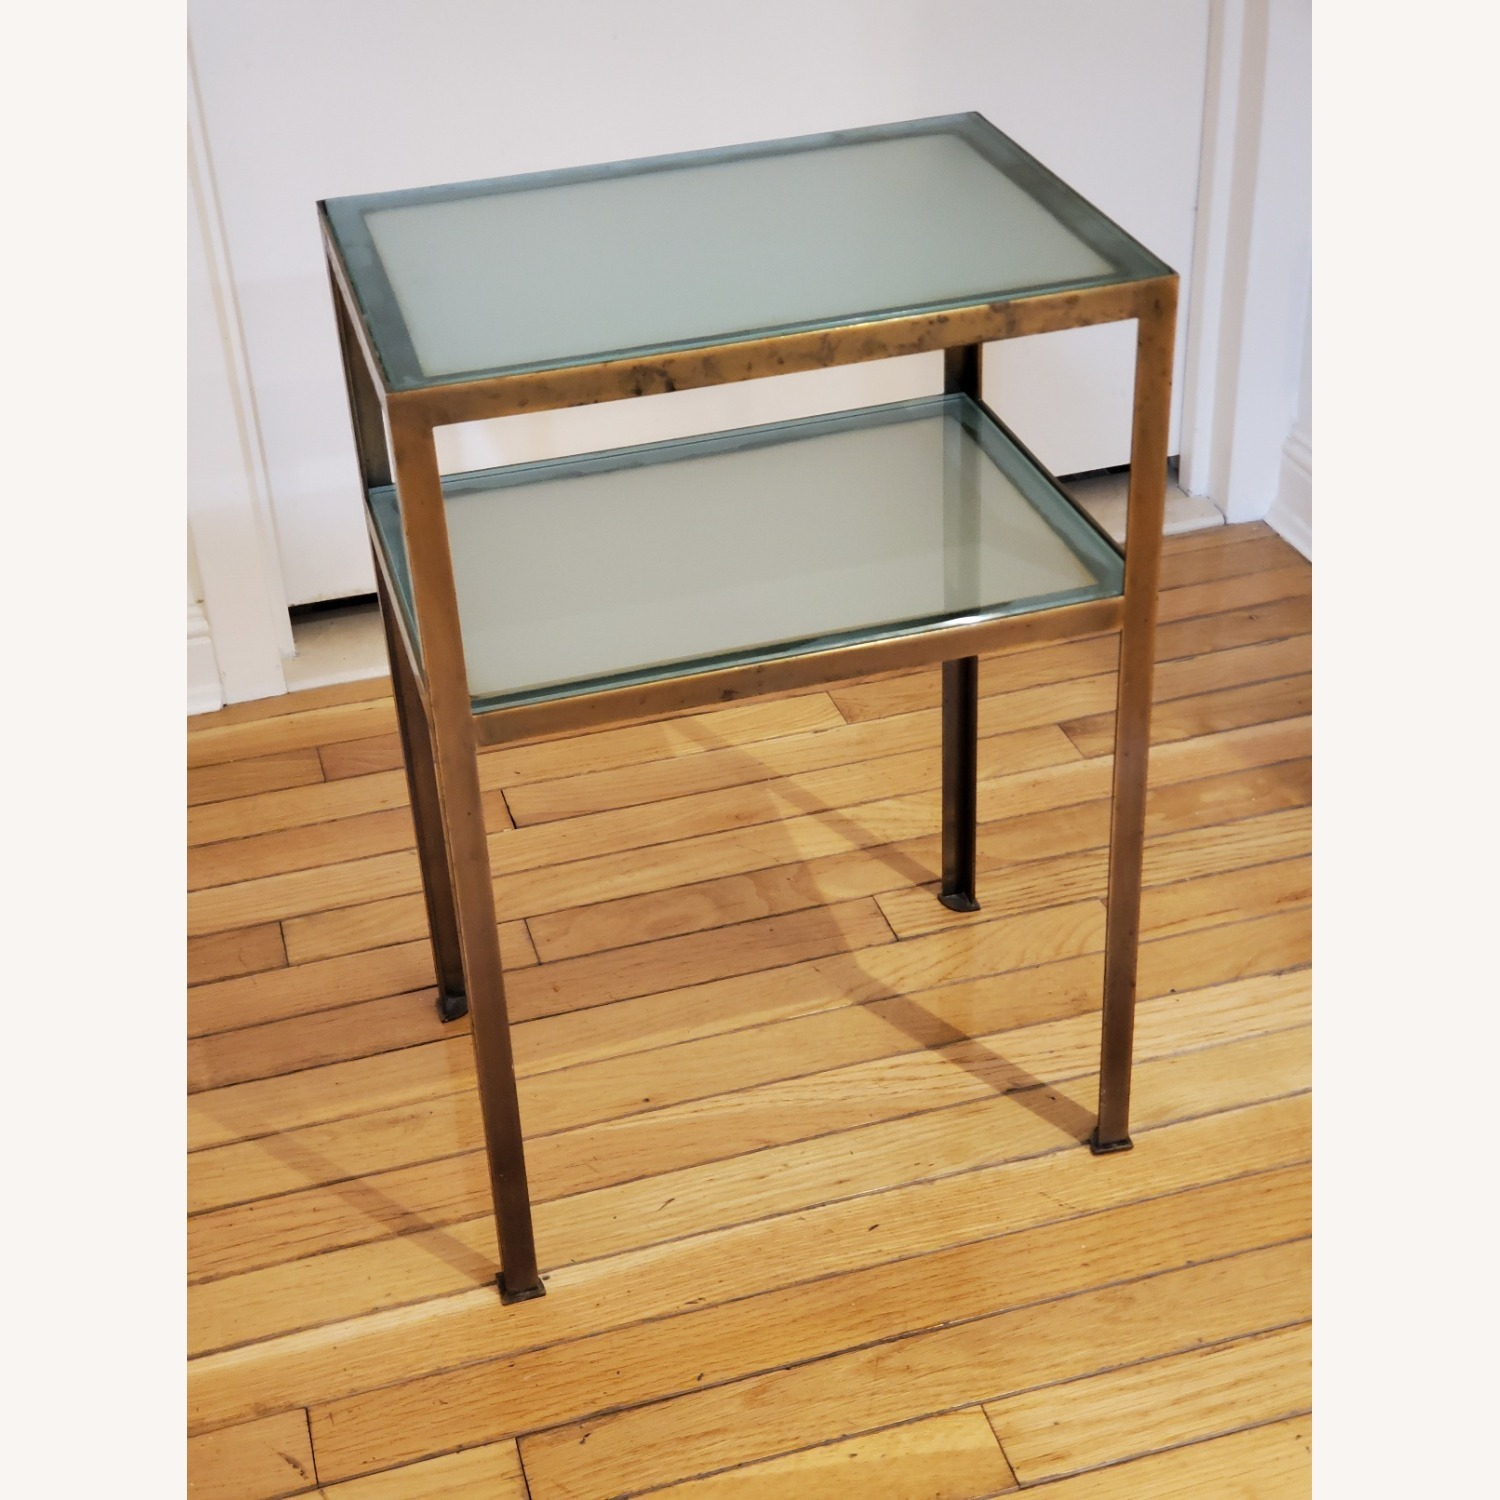 Small two-tiered Glass and Brass End Table - image-1